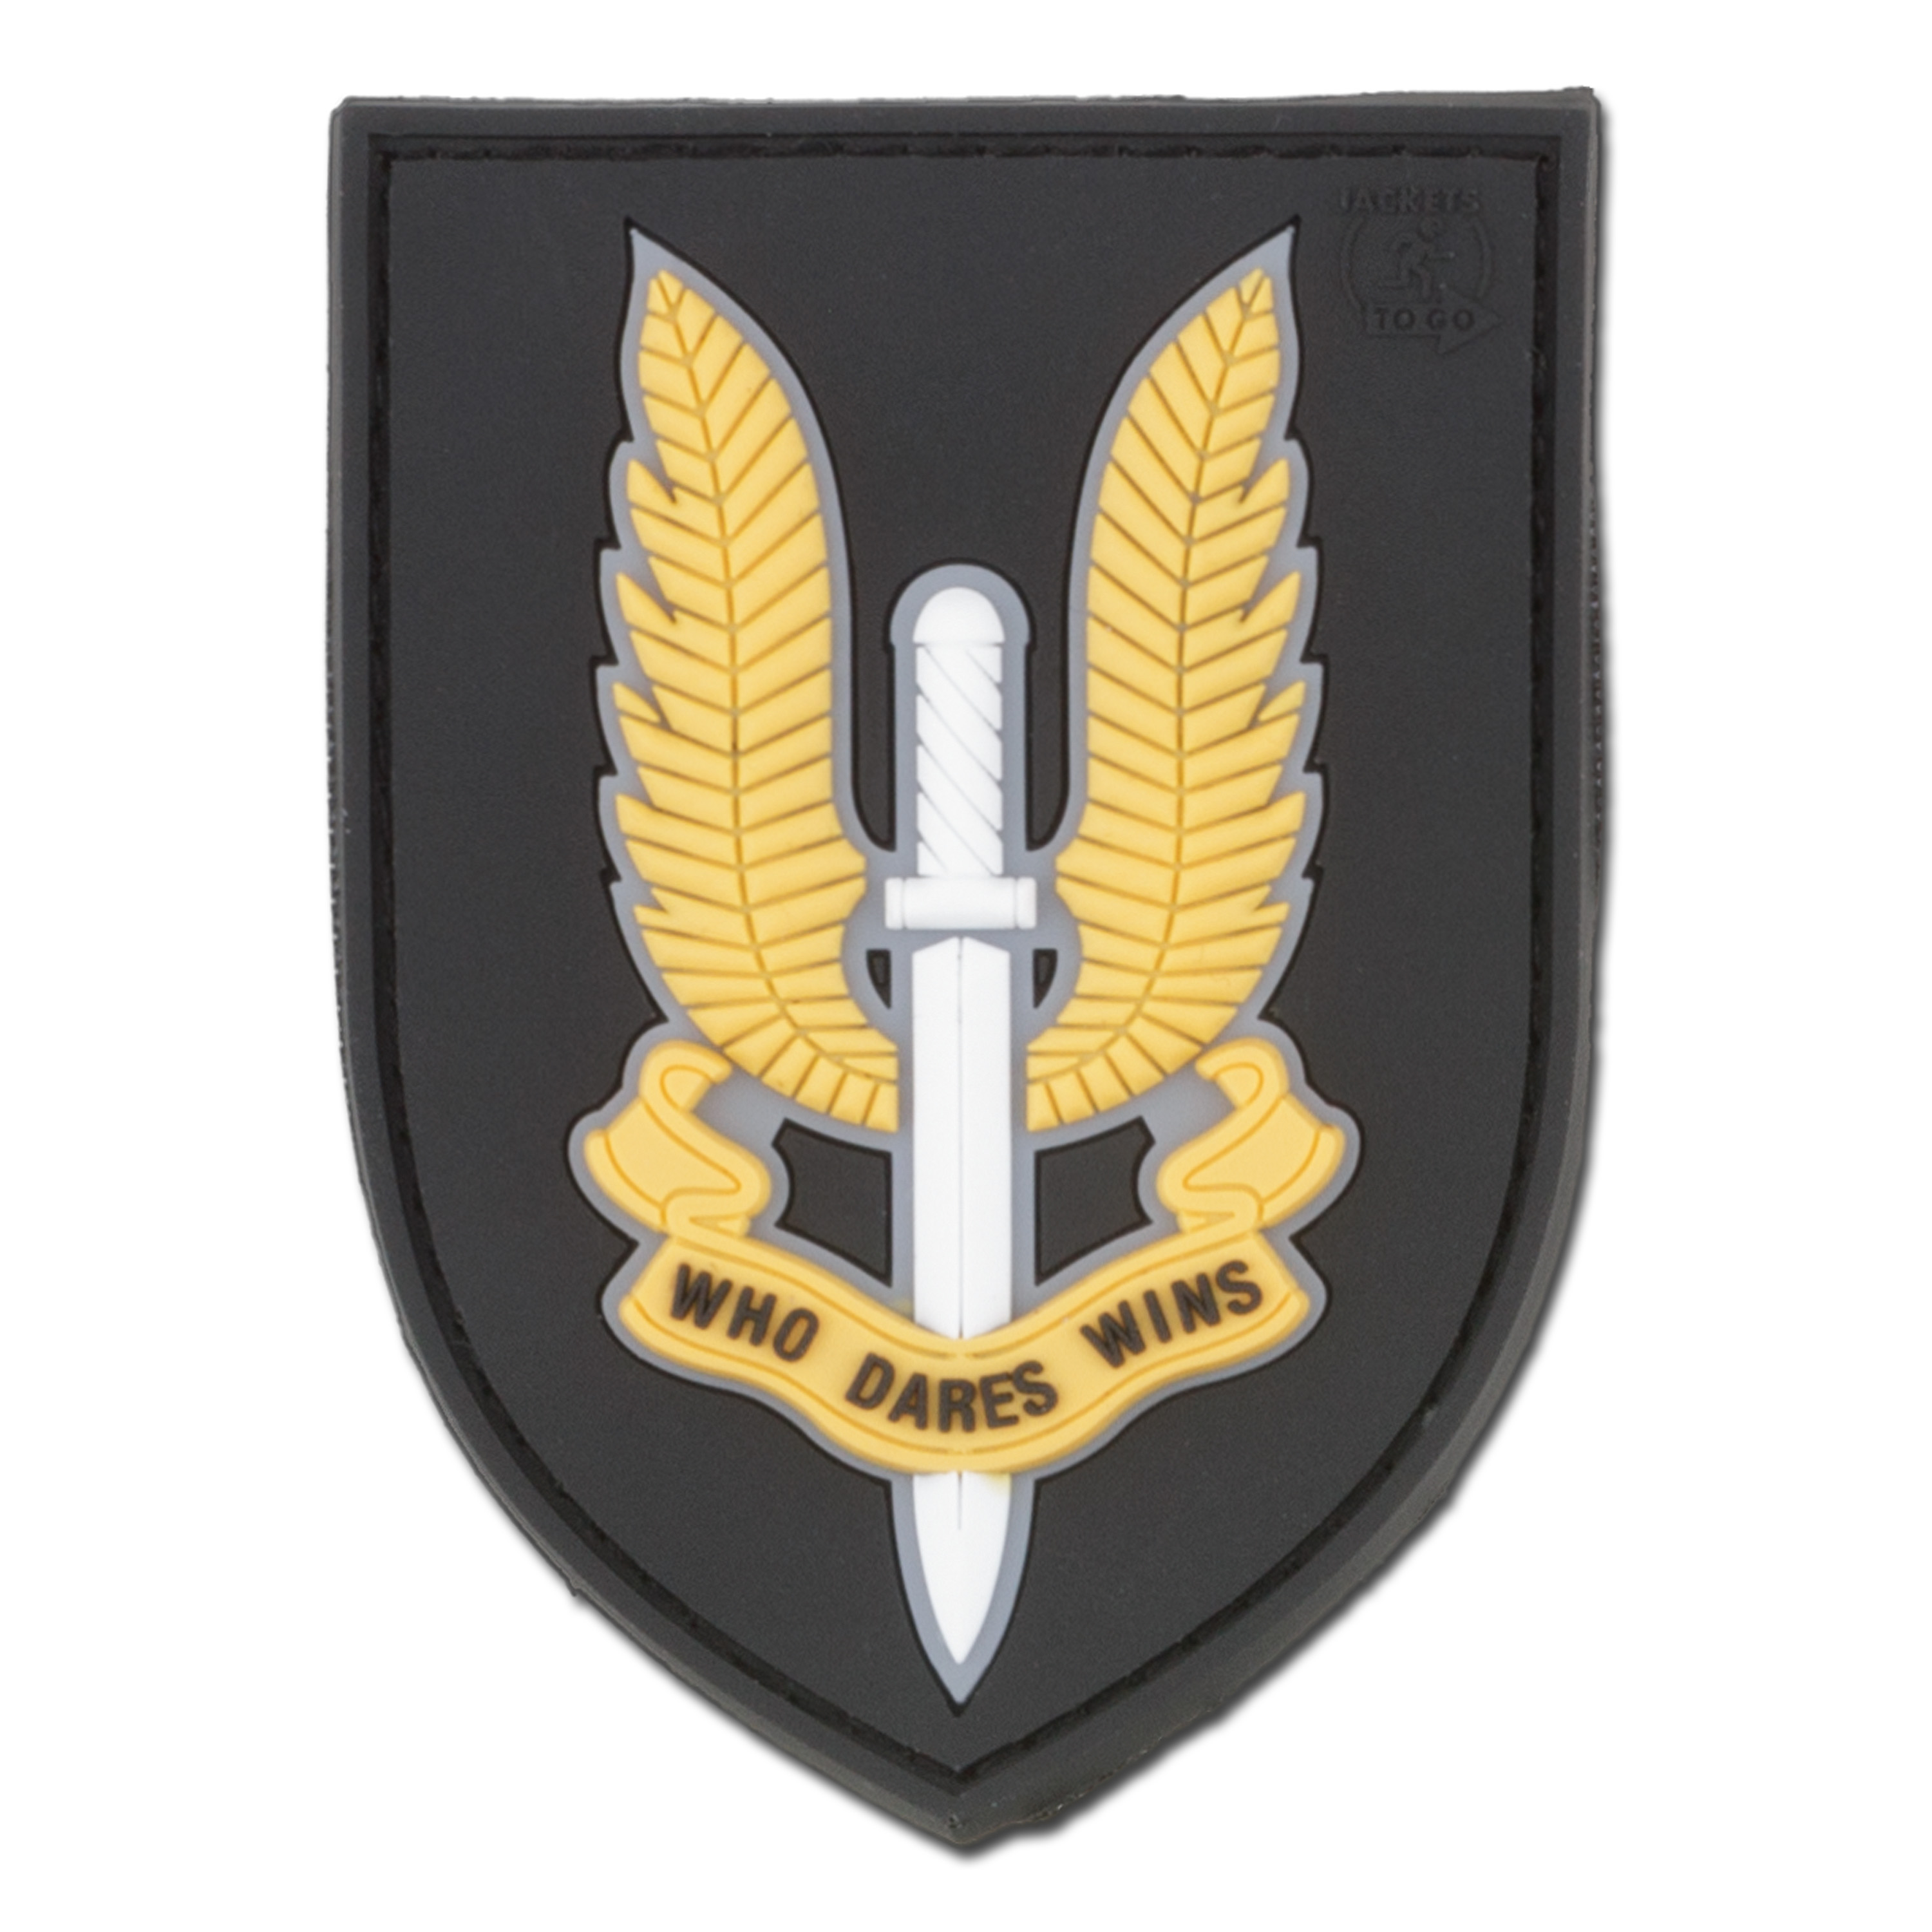 3D-Patch Who Dares Wins SAS full color